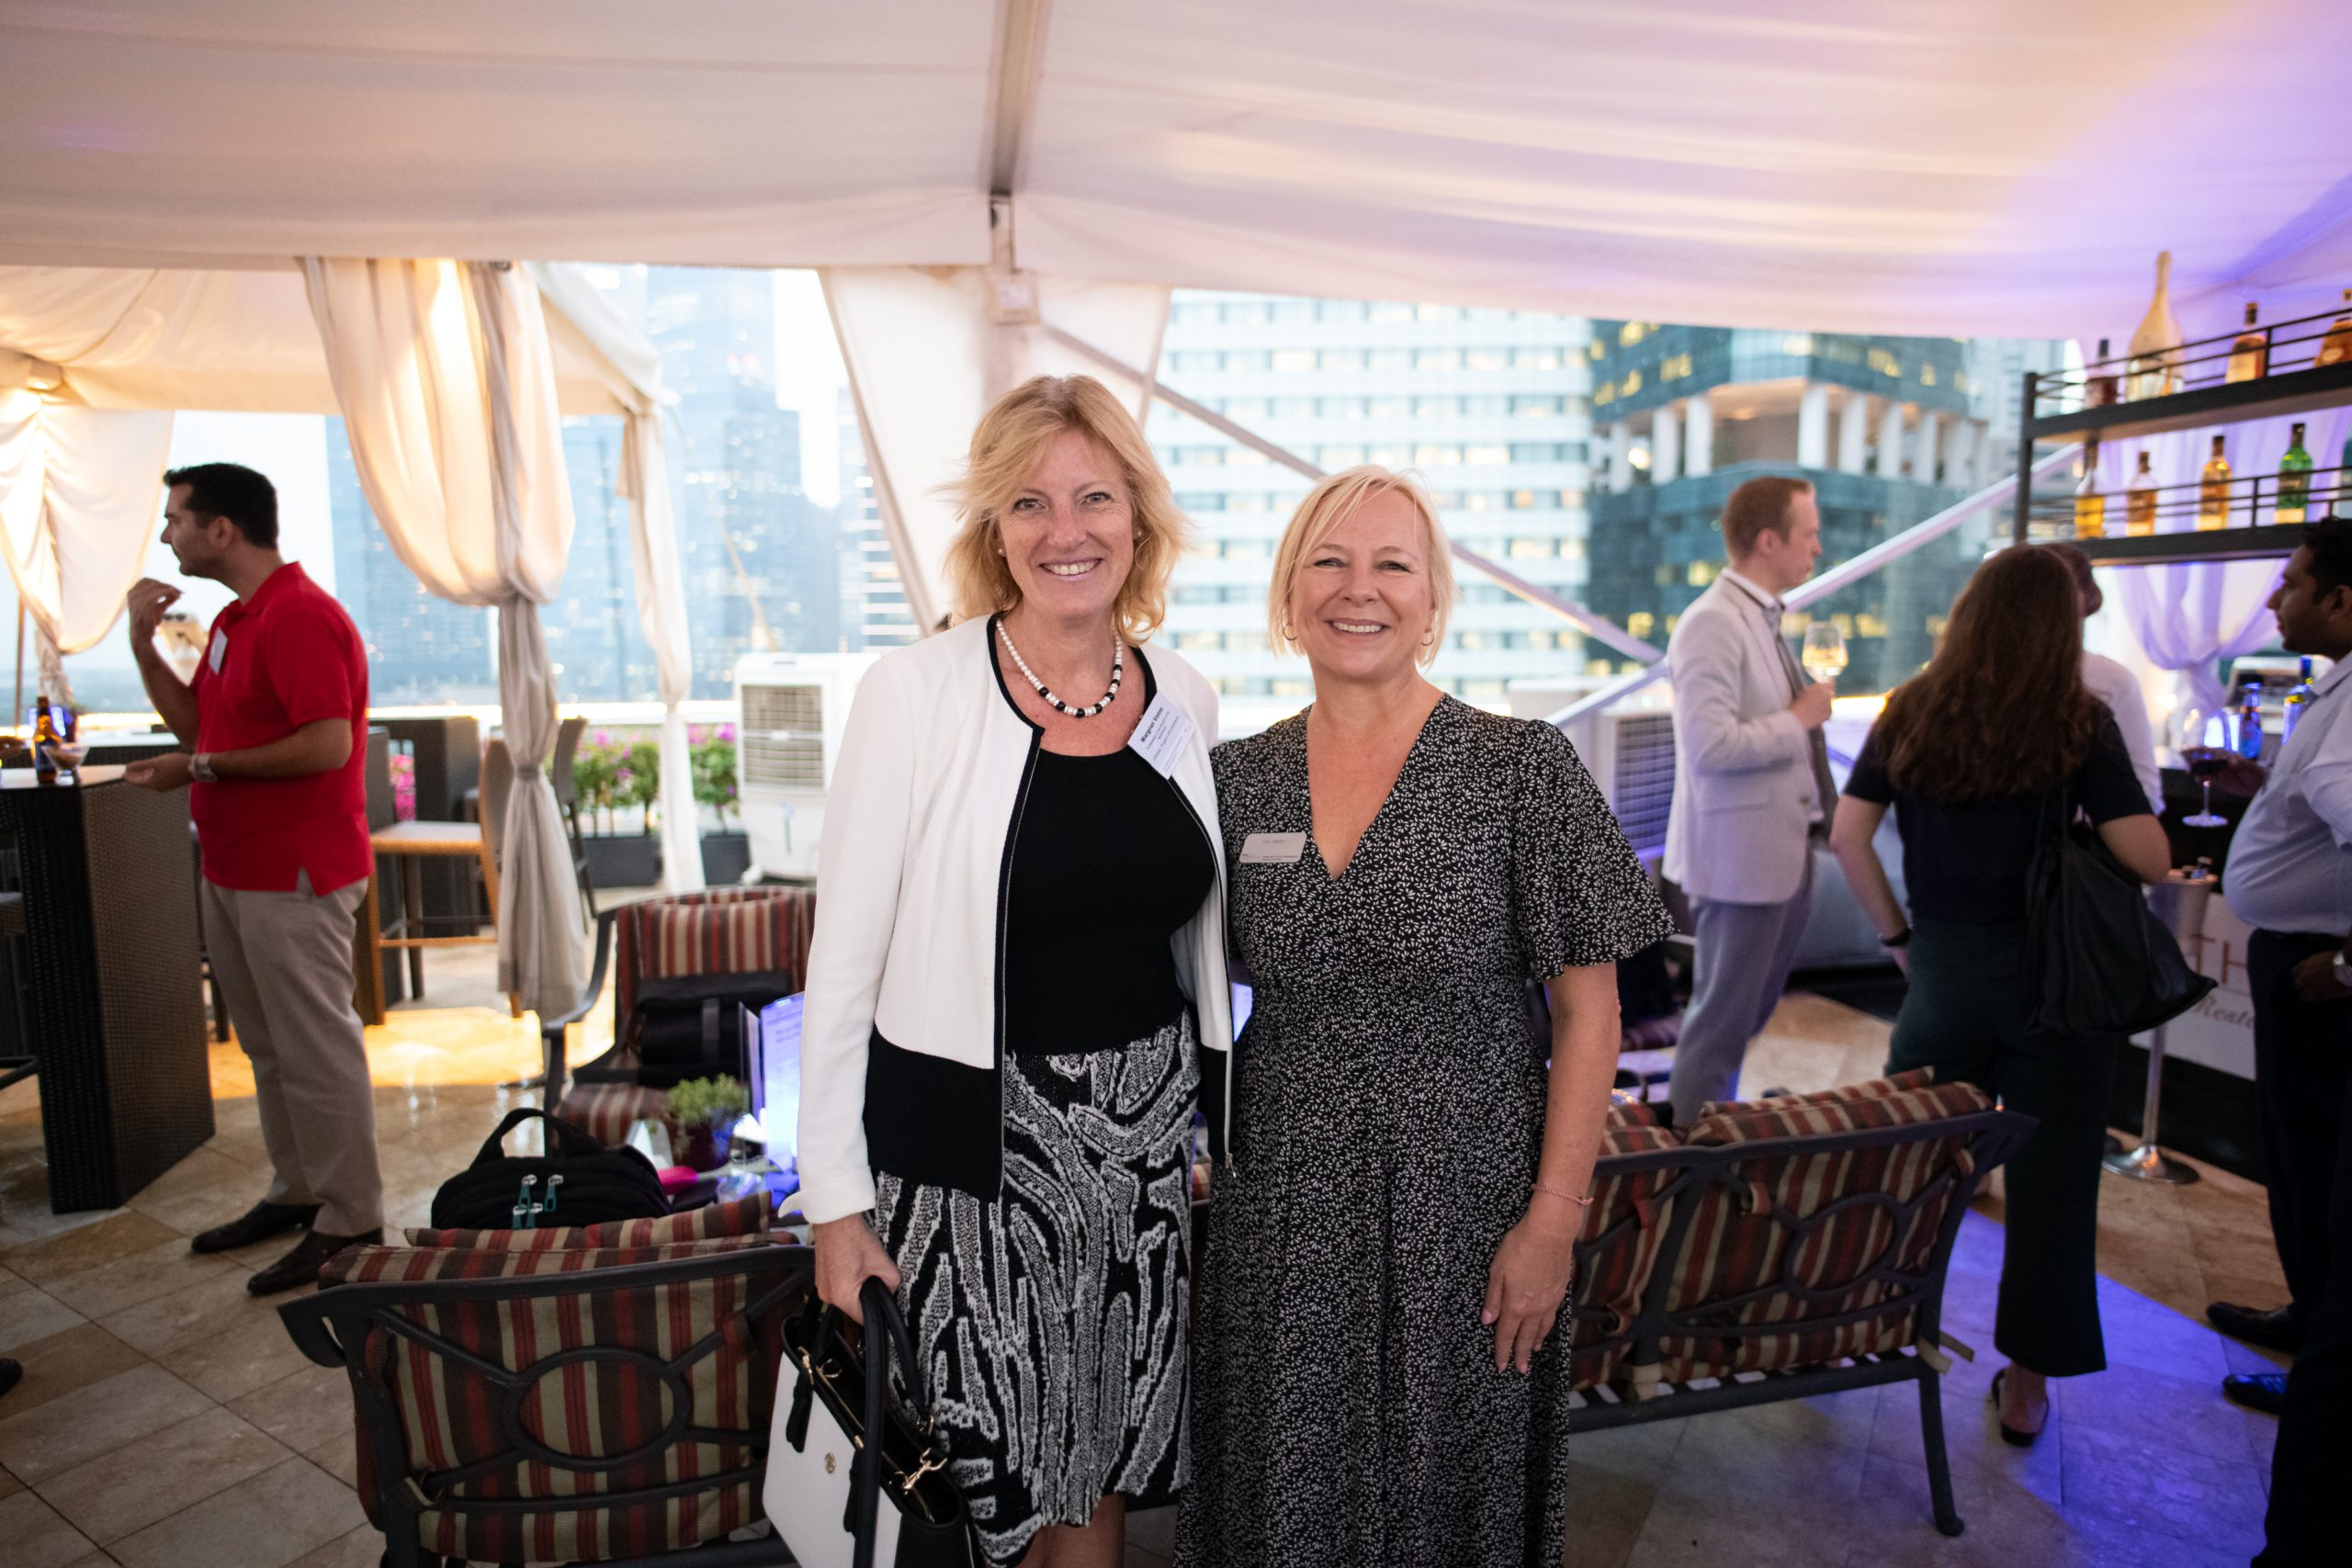 Margriet and Sue standing together at an event